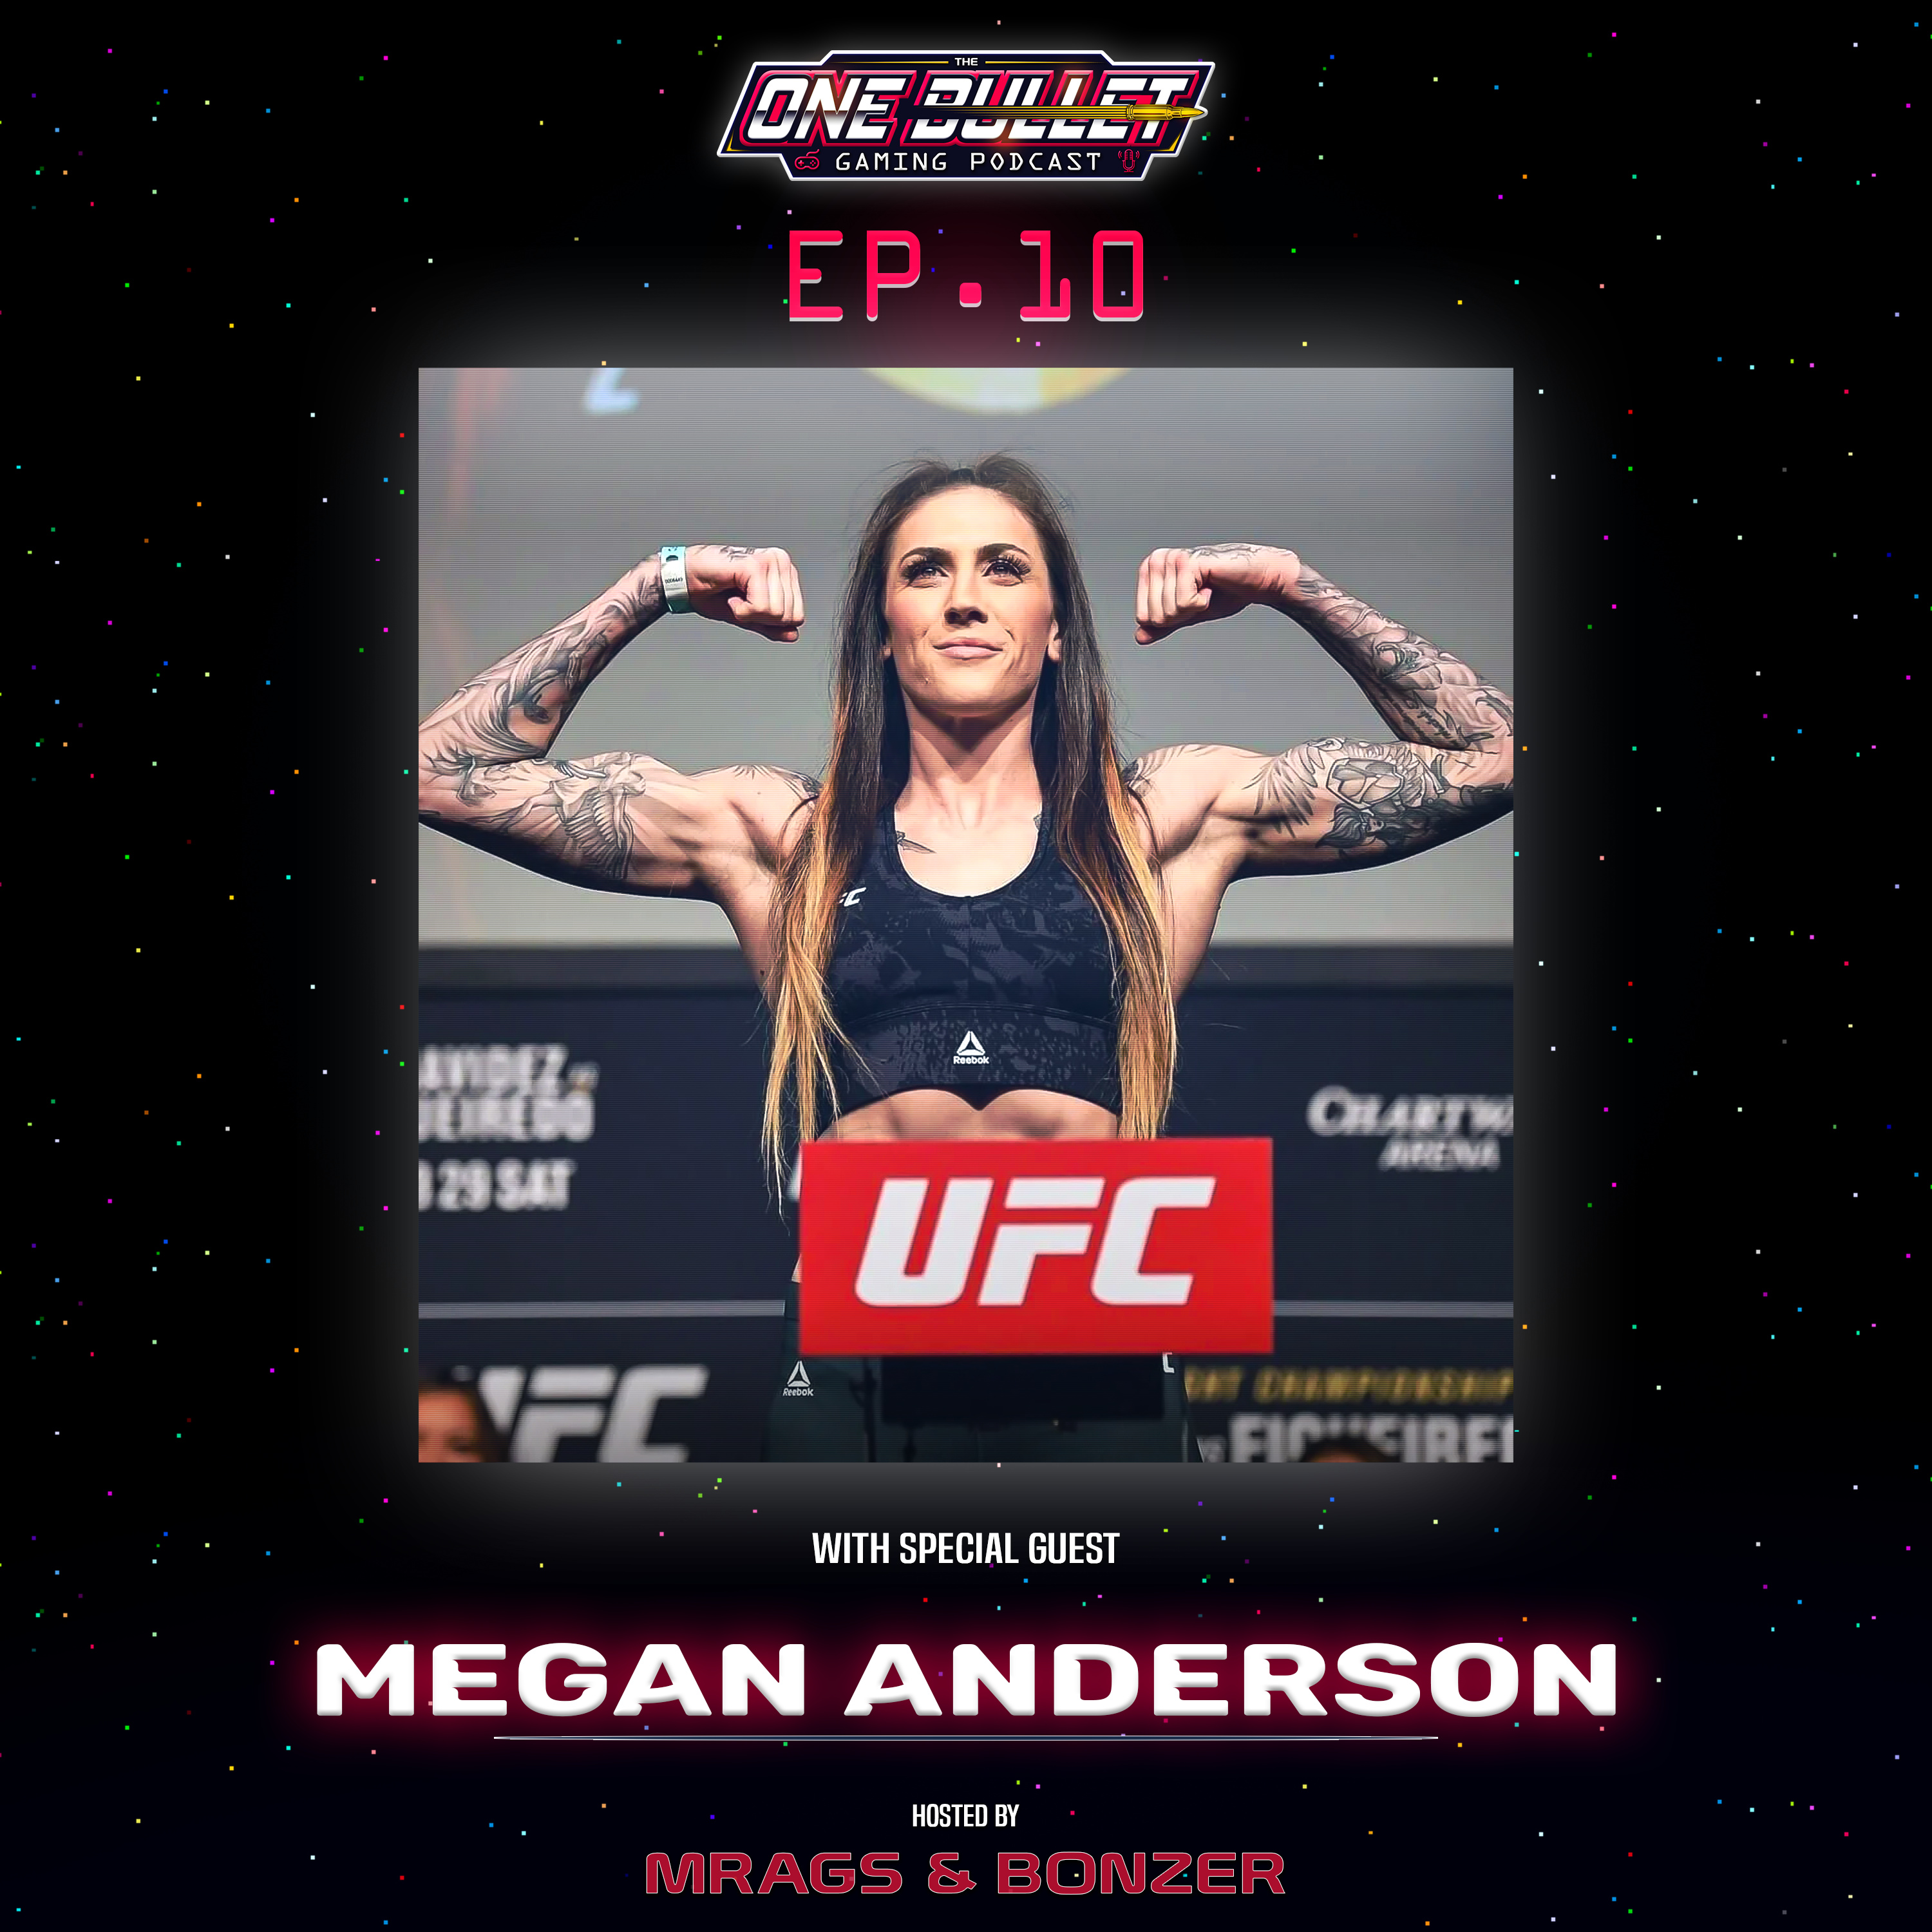 EP 10 - Behind the Gamer w/ MMA Fighter Megan Anderson